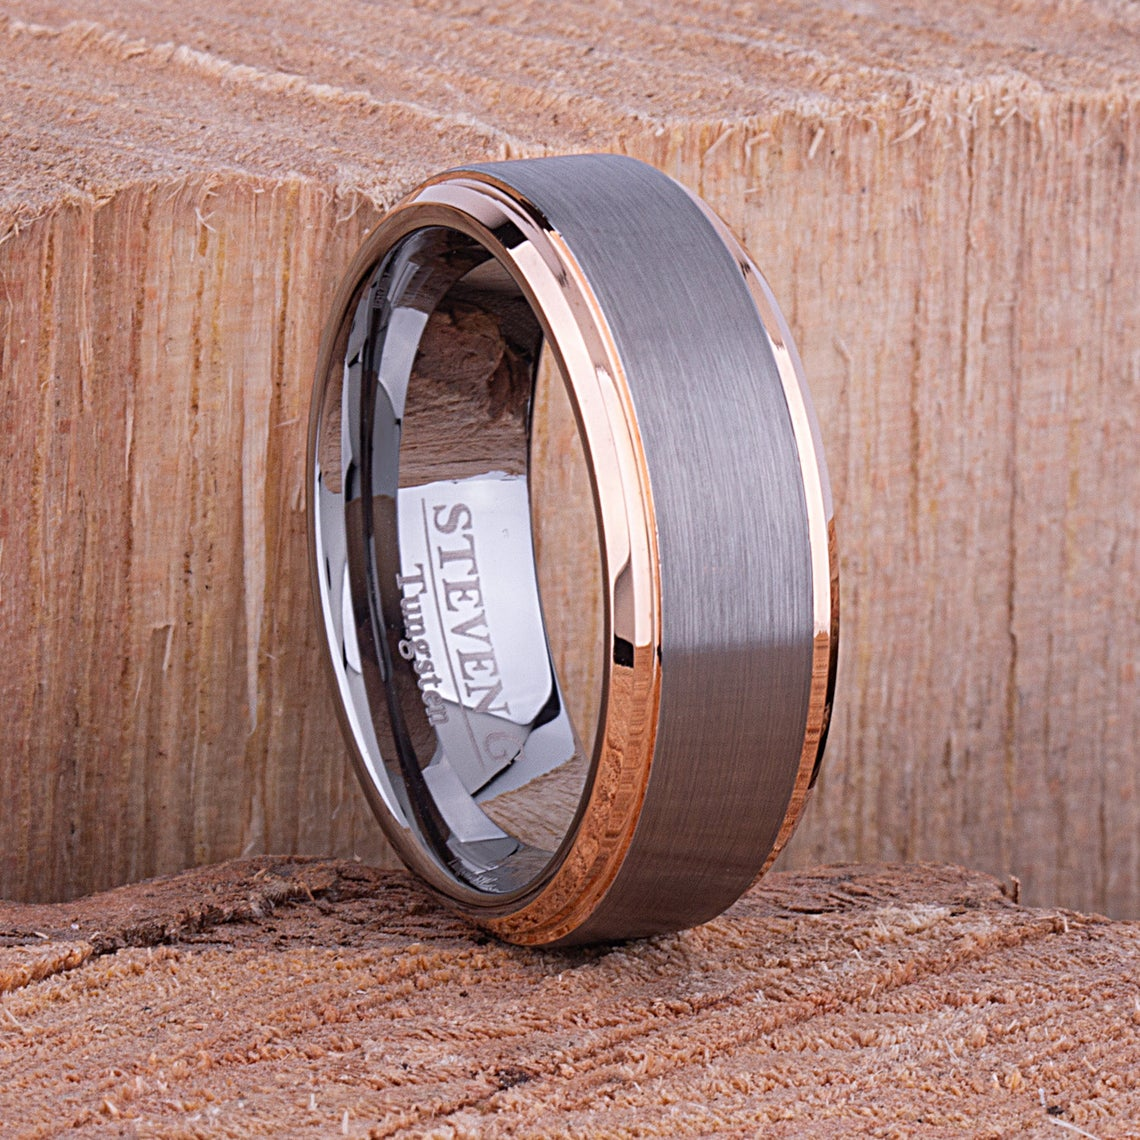 Tungsten Ring with Rose Gold 8mm - TCR082 rose gold men's wedding or engagement band or promise ring for boyfriend